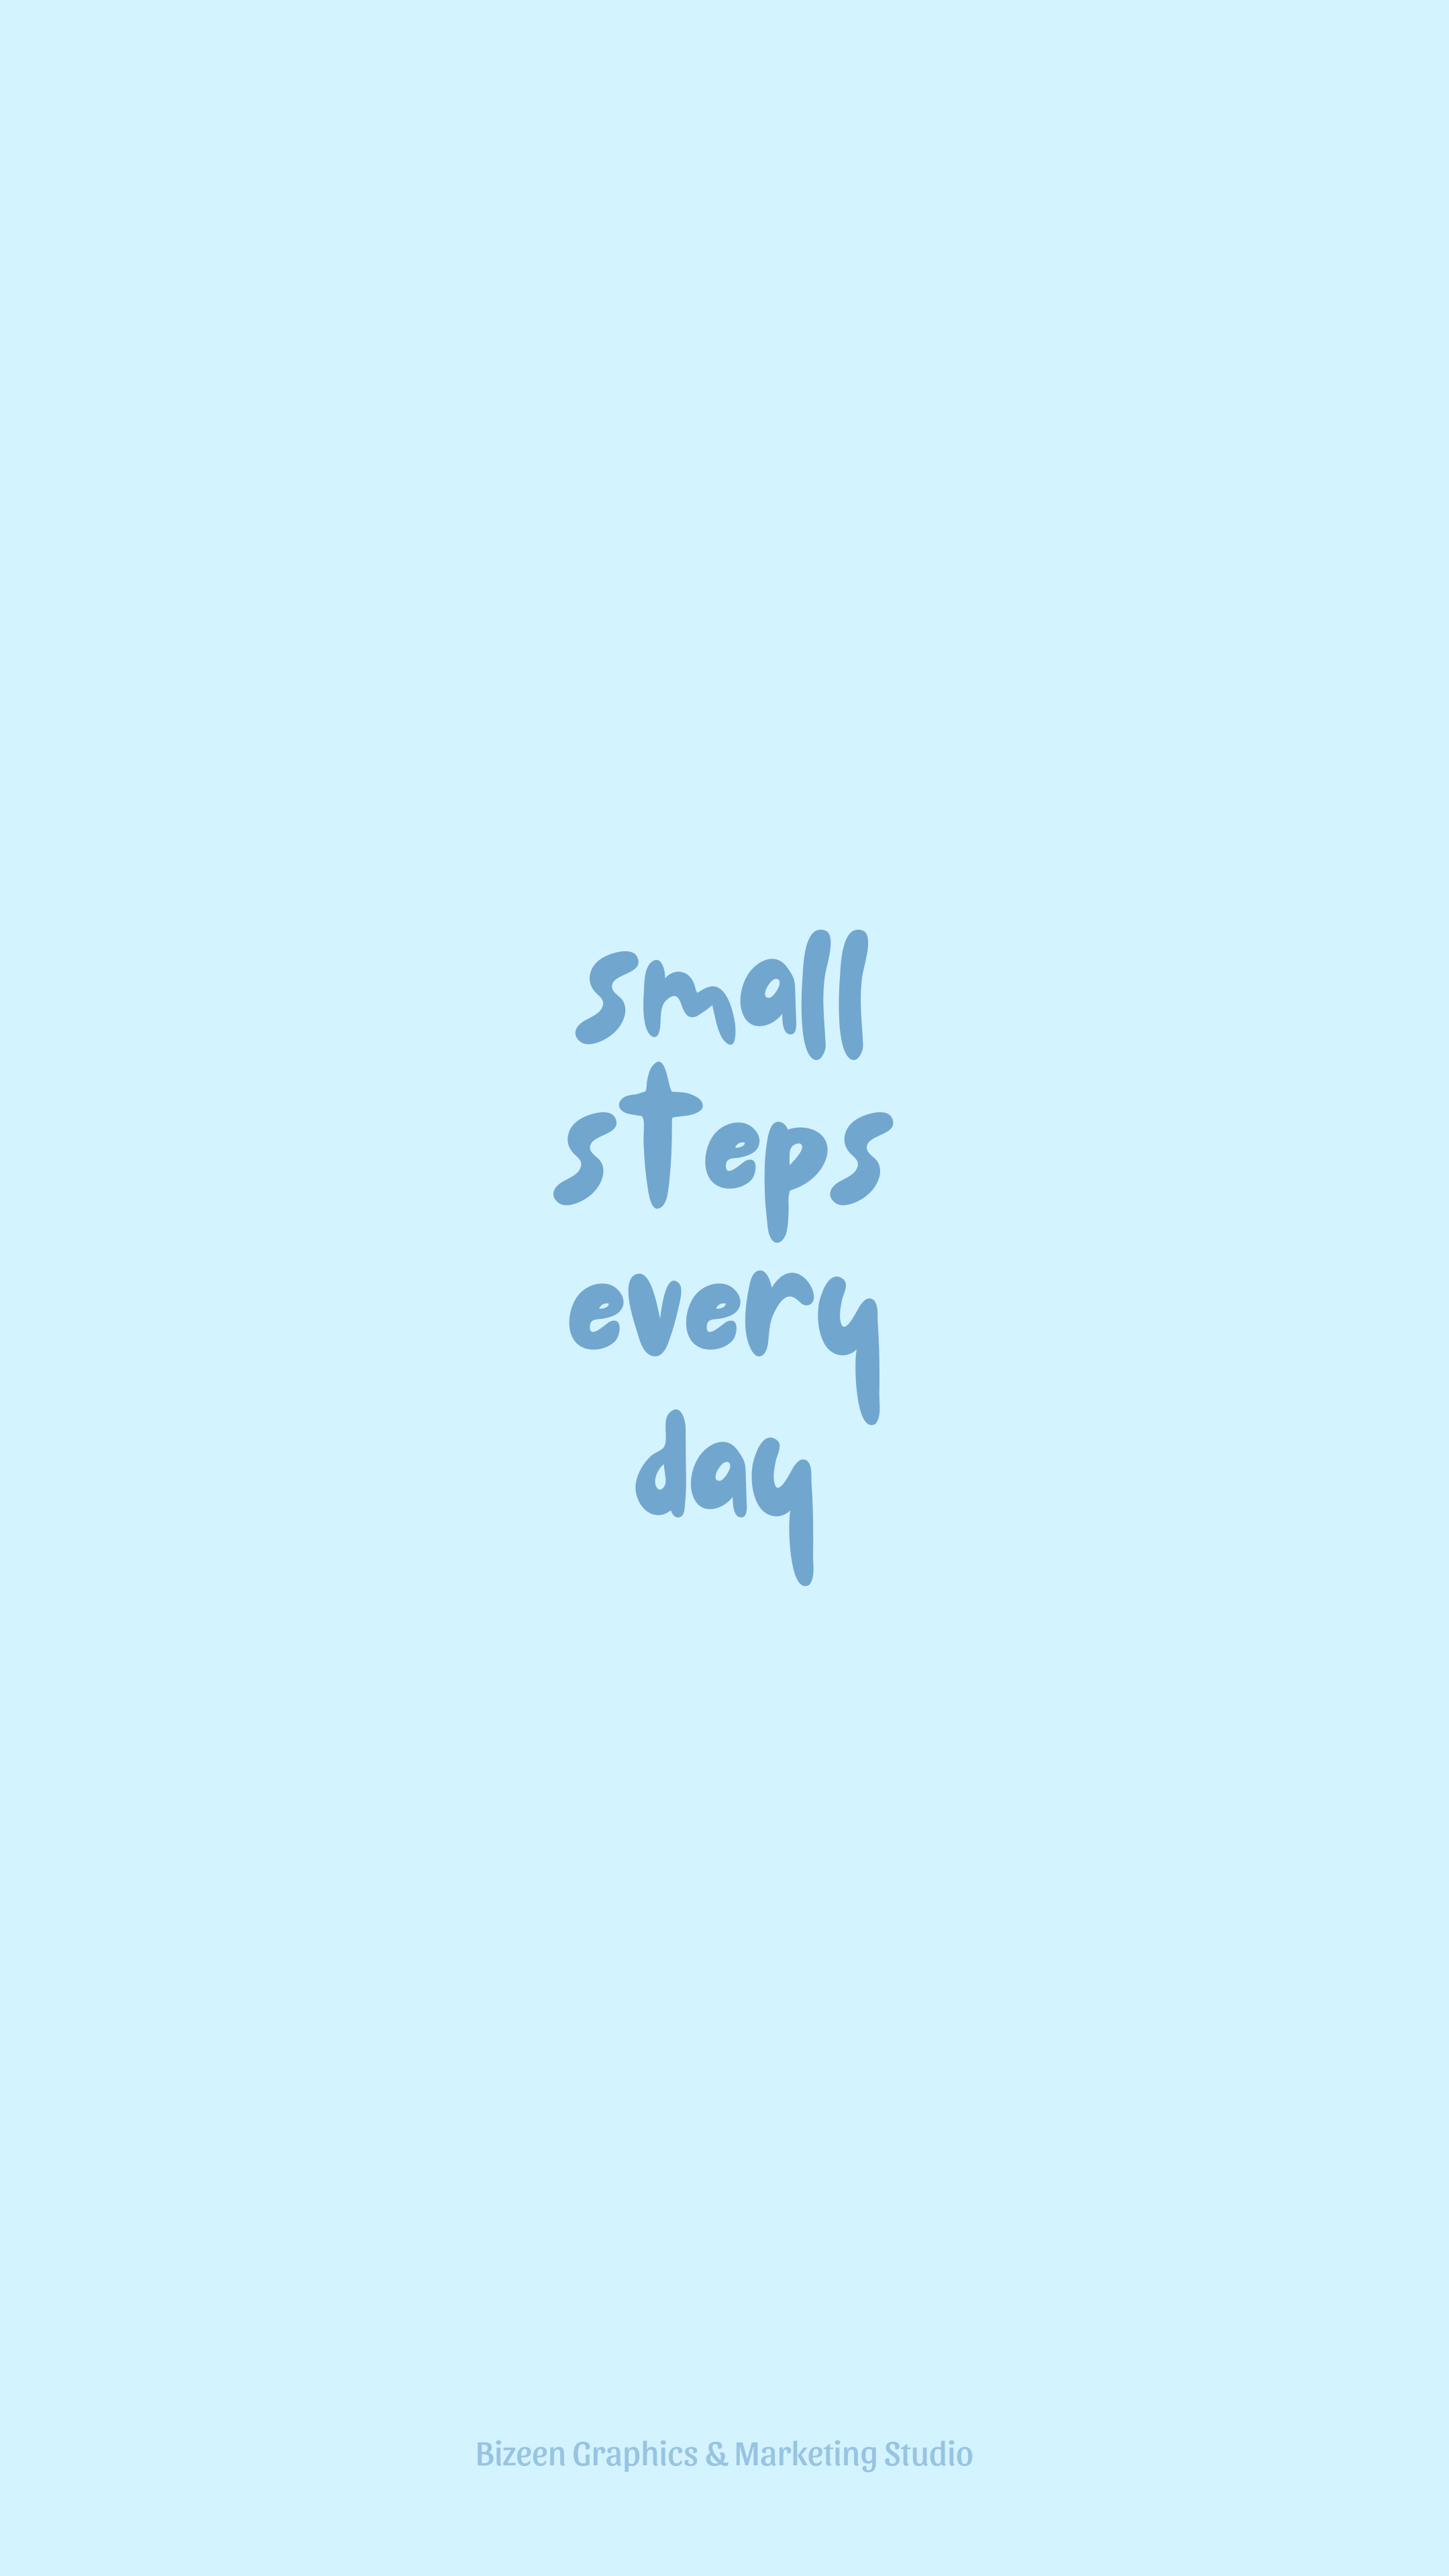 Pastel Blue Aesthetic Wallpaper Quotes Small Steps Everyday Cute Inspirational Quotes Blue Quotes Positive Quotes